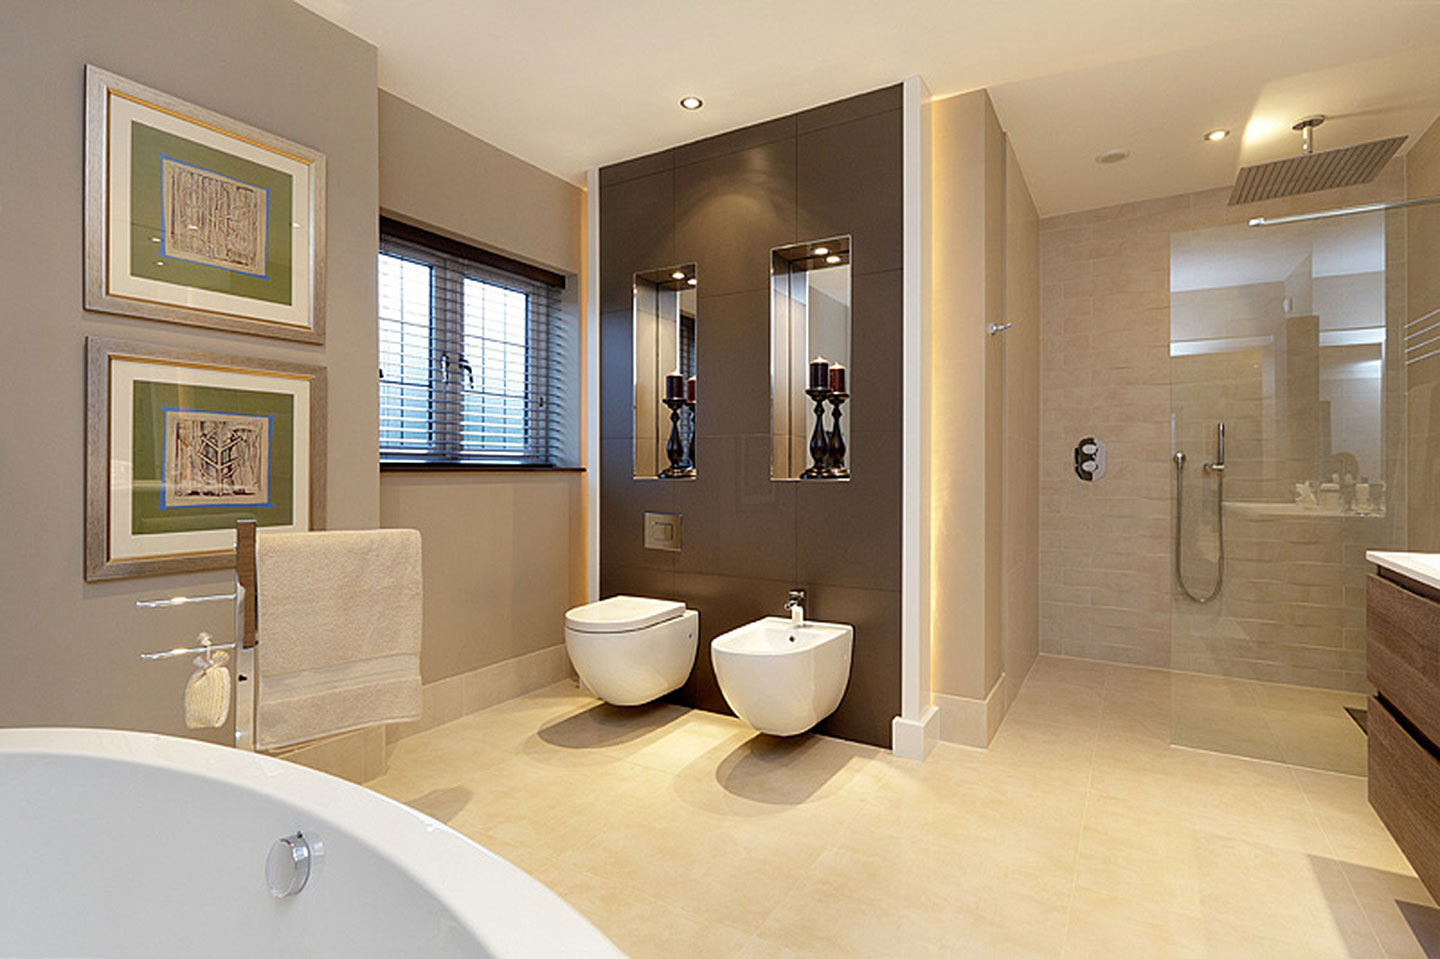 Kitchens and bathrooms direct - Gerrards Cross Development A New Build With A Luxury Kitchen And Bathrooms